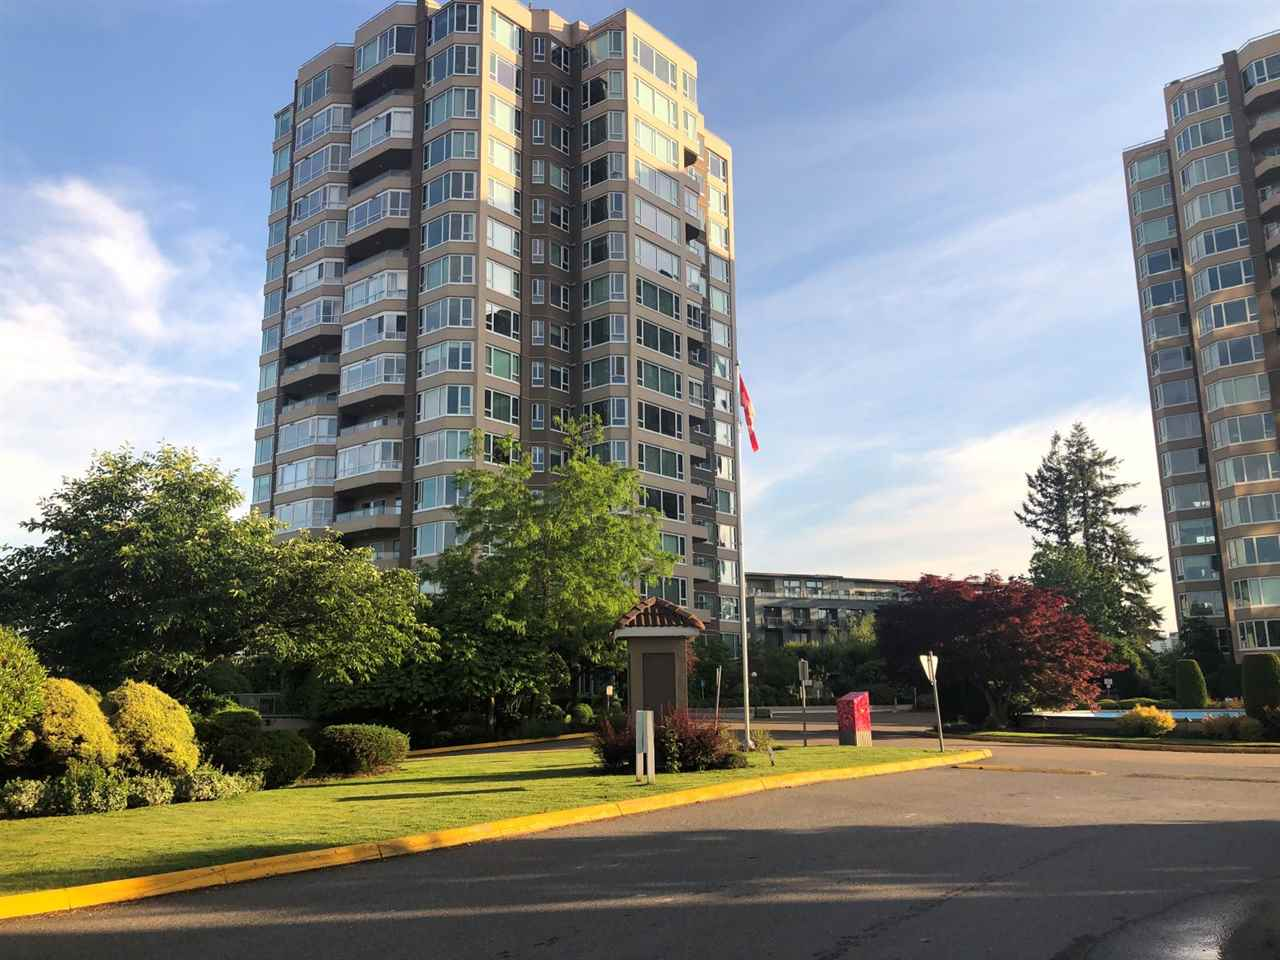 1202 3170 GLADWIN ROAD - Central Abbotsford Apartment/Condo for sale, 2 Bedrooms (R2467164) - #1